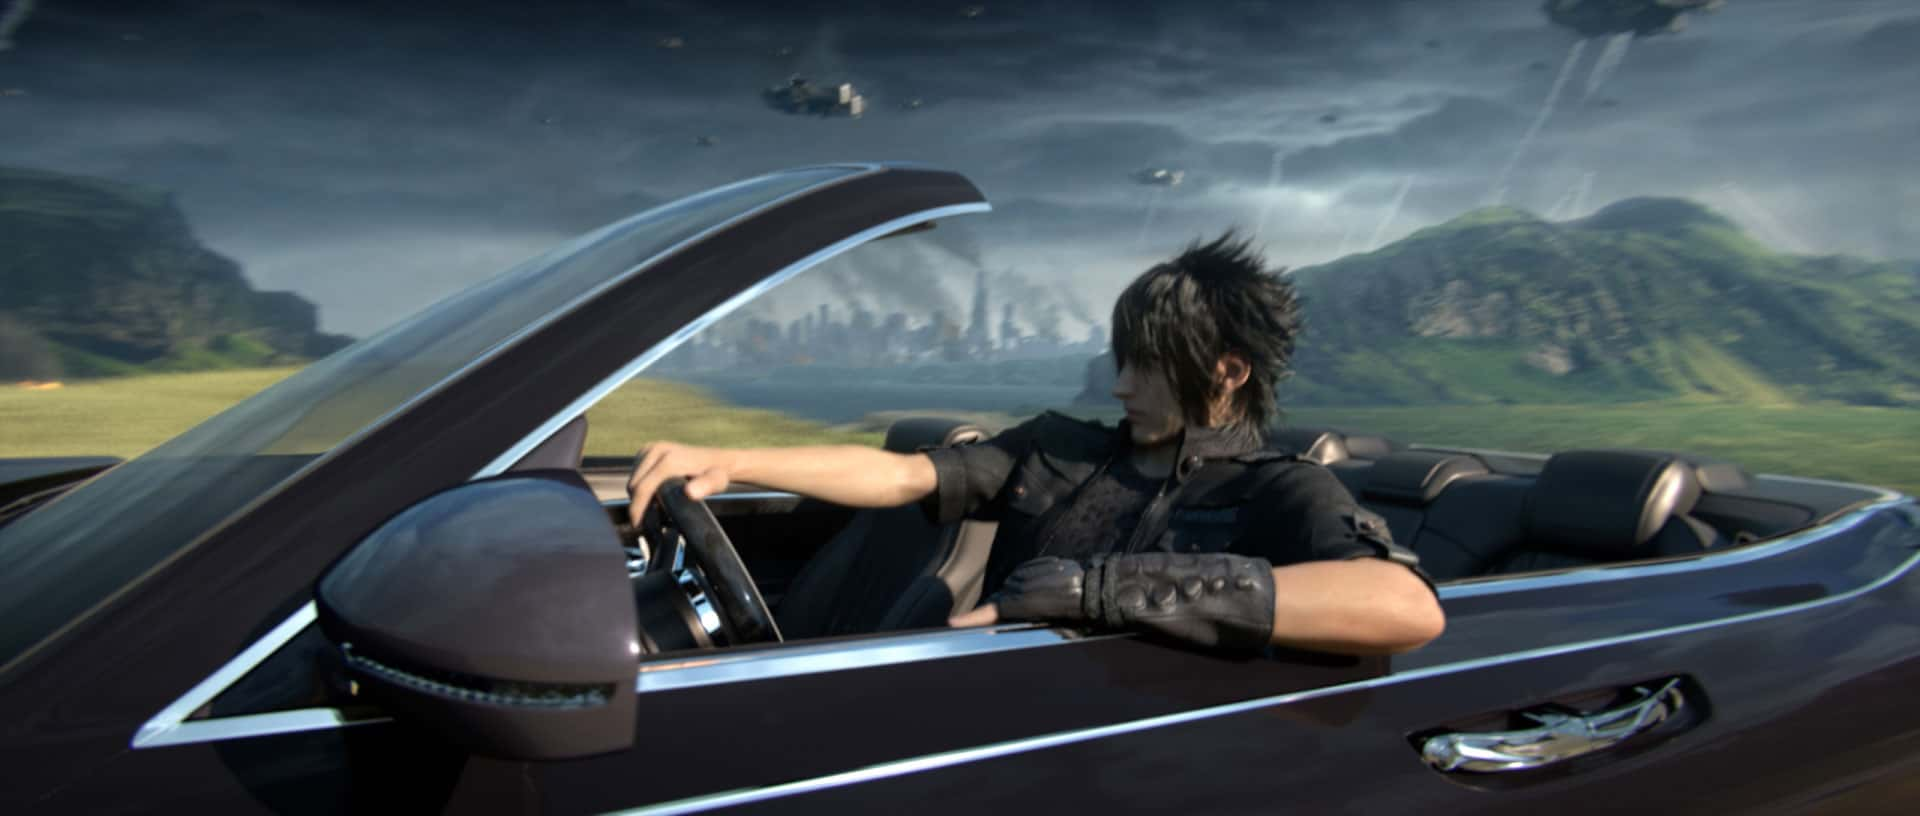 Someone Leaked Final Fantasy 15's Ending Six Months Ago